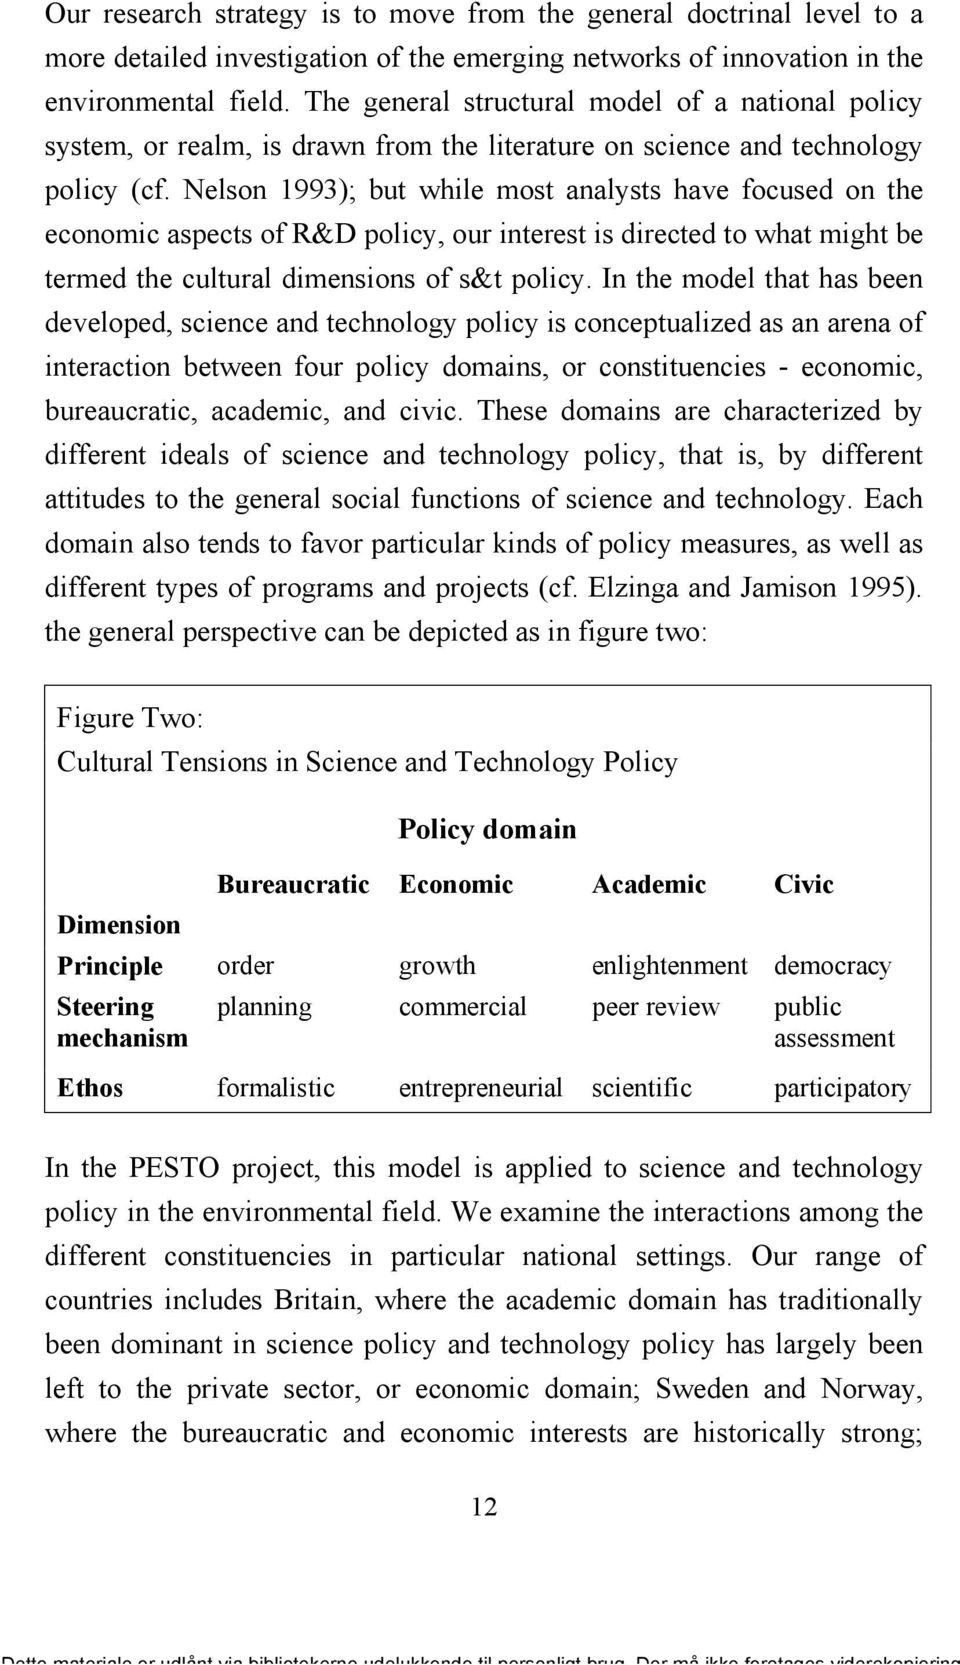 Nelson 1993); but while most analysts have focused on the economic aspects of R&D policy, our interest is directed to what might be termed the cultural dimensions of s&t policy.